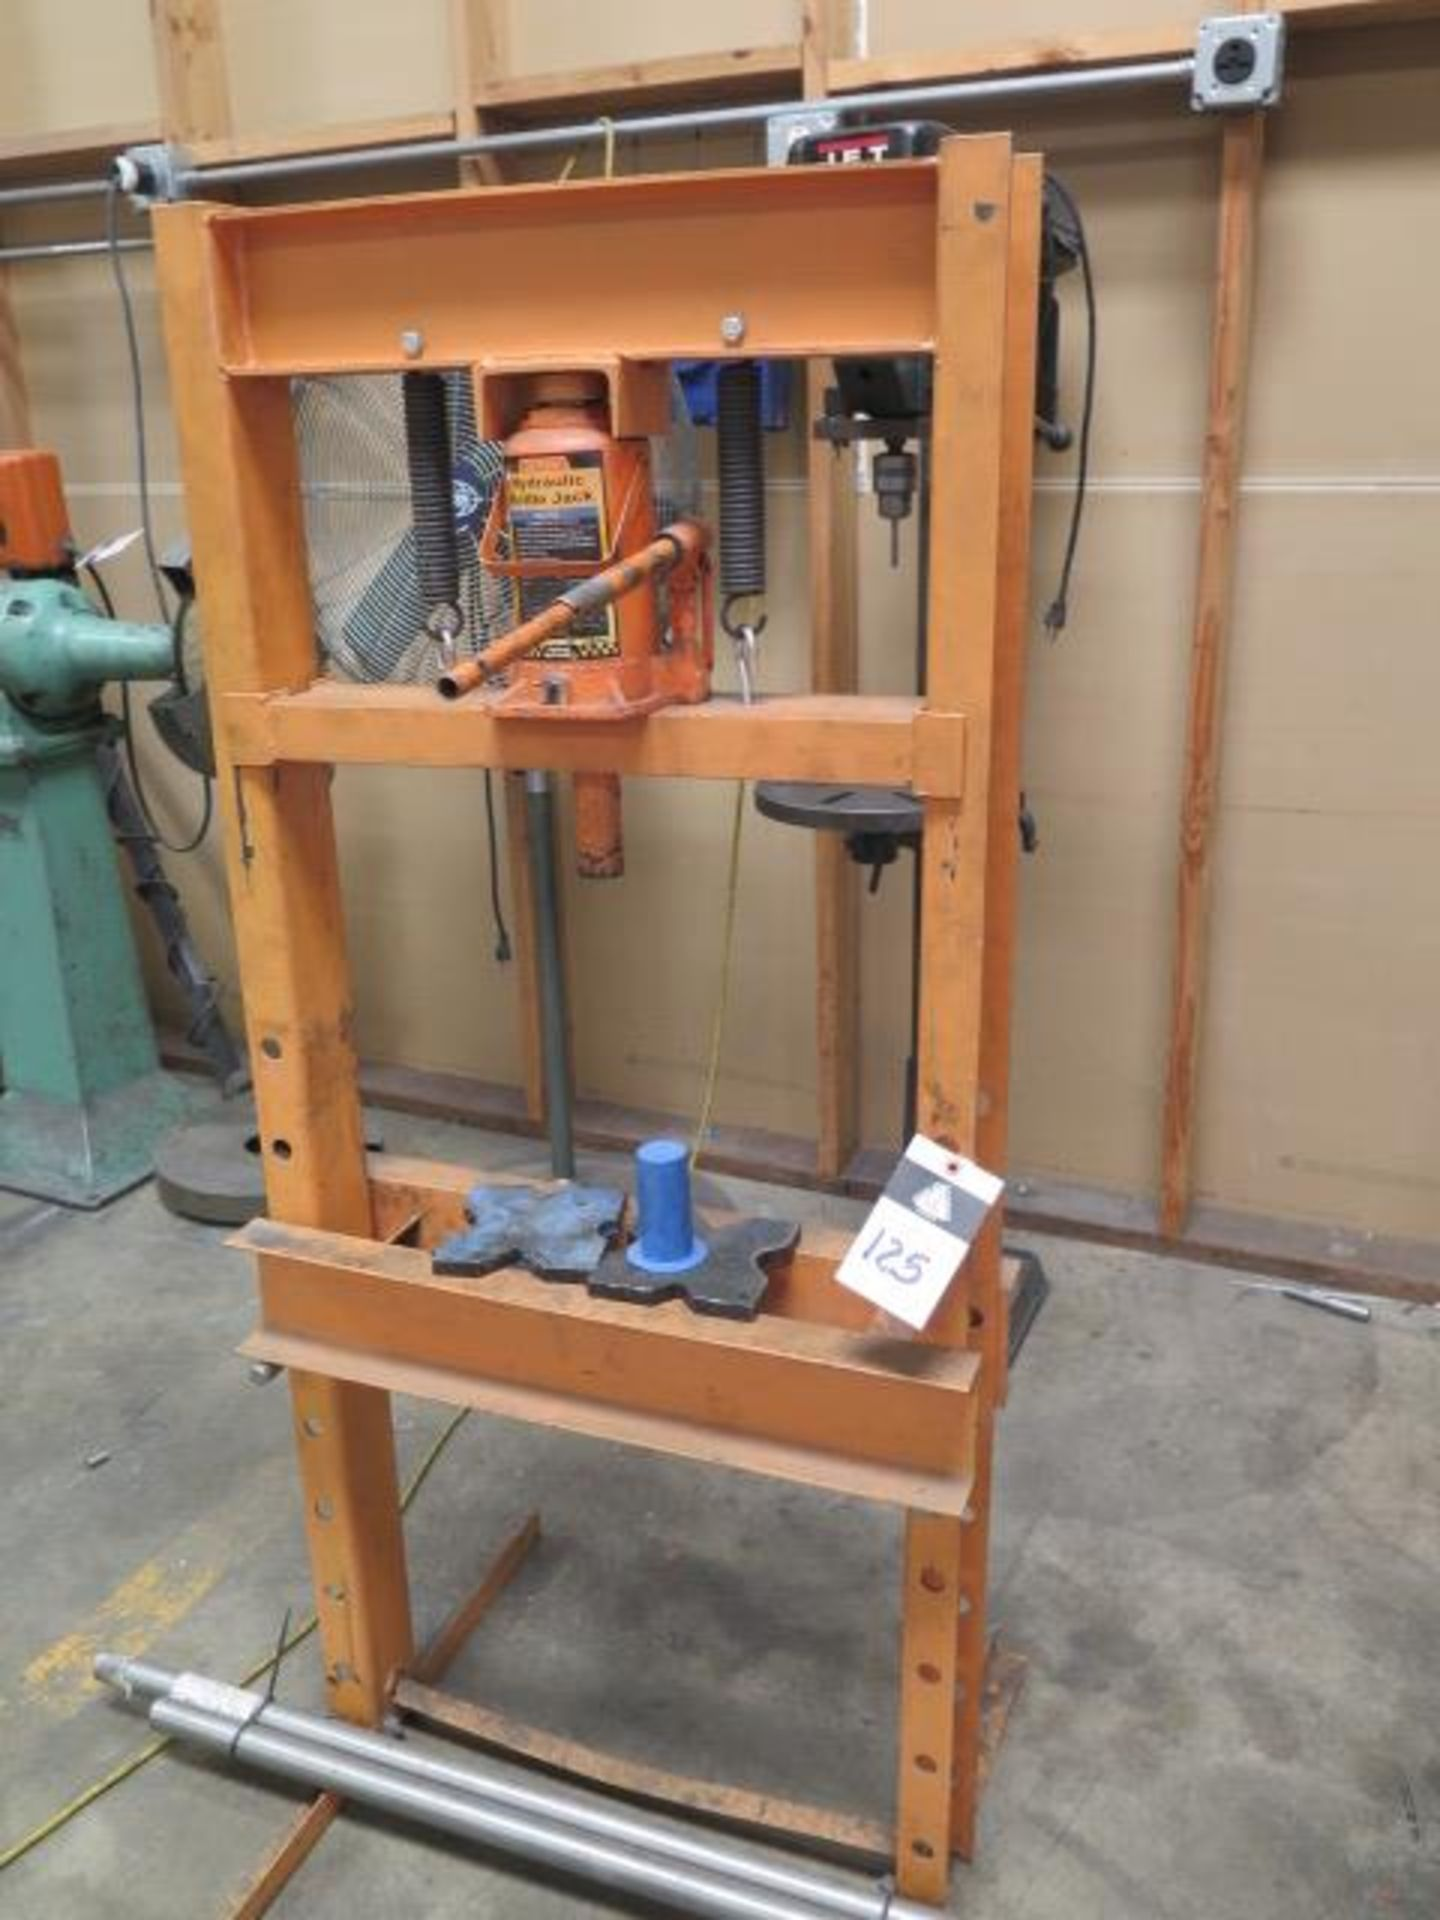 Central Hydraulics 20 Ton Hydraulic H-Frame Press (SOLD AS-IS - NO WARRANTY)